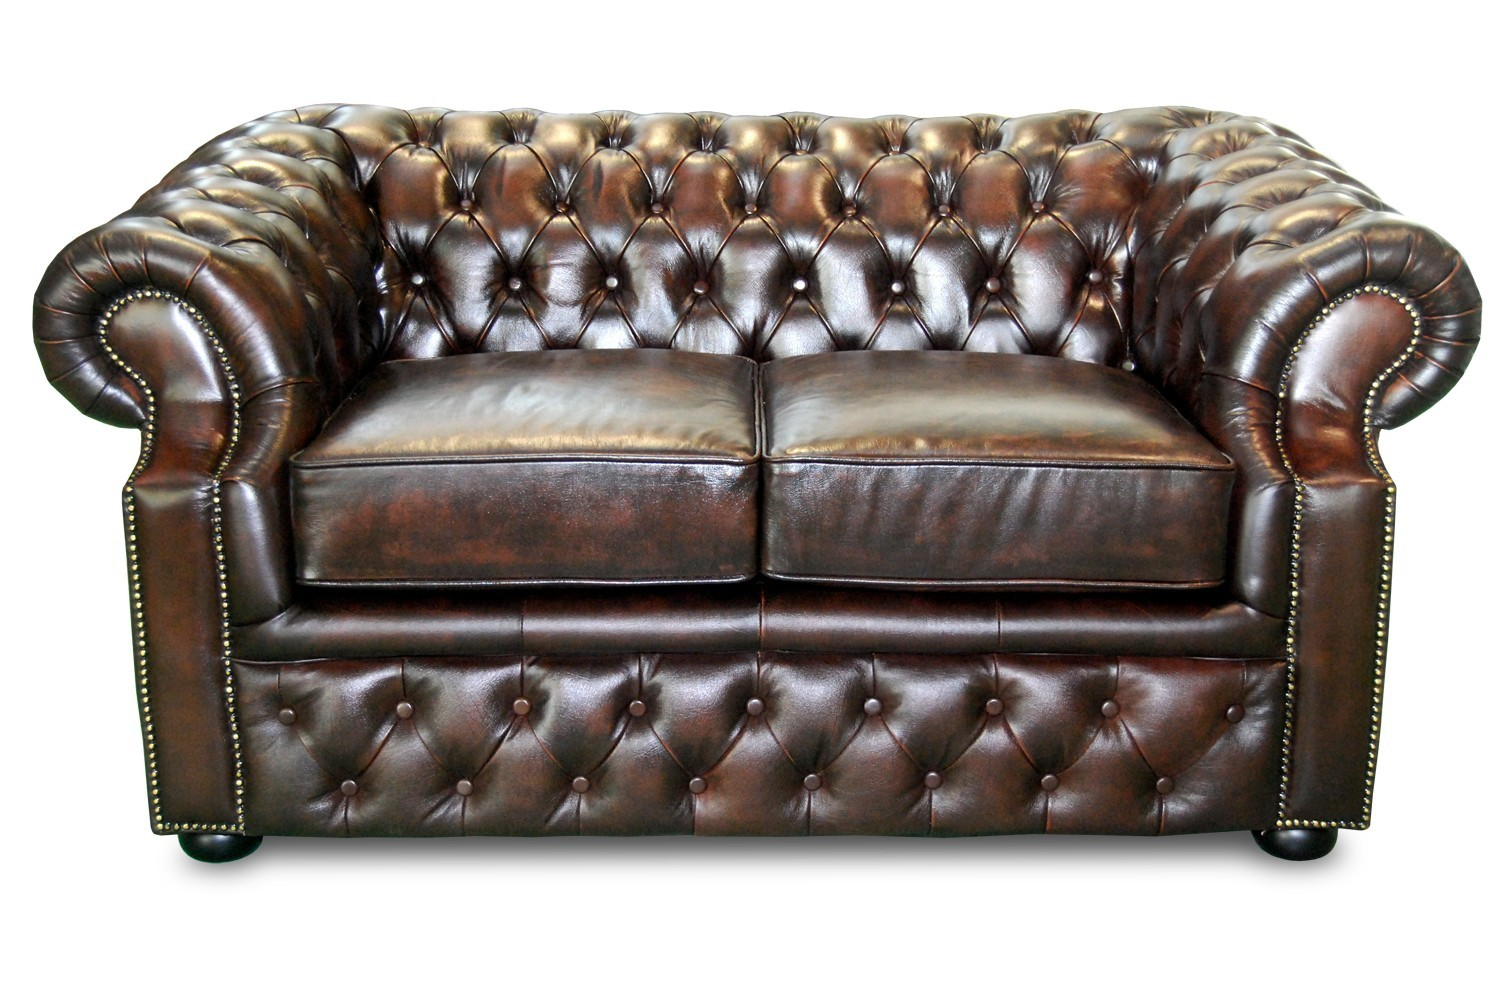 Charlston Classic Low Back Chesterfield Lounge